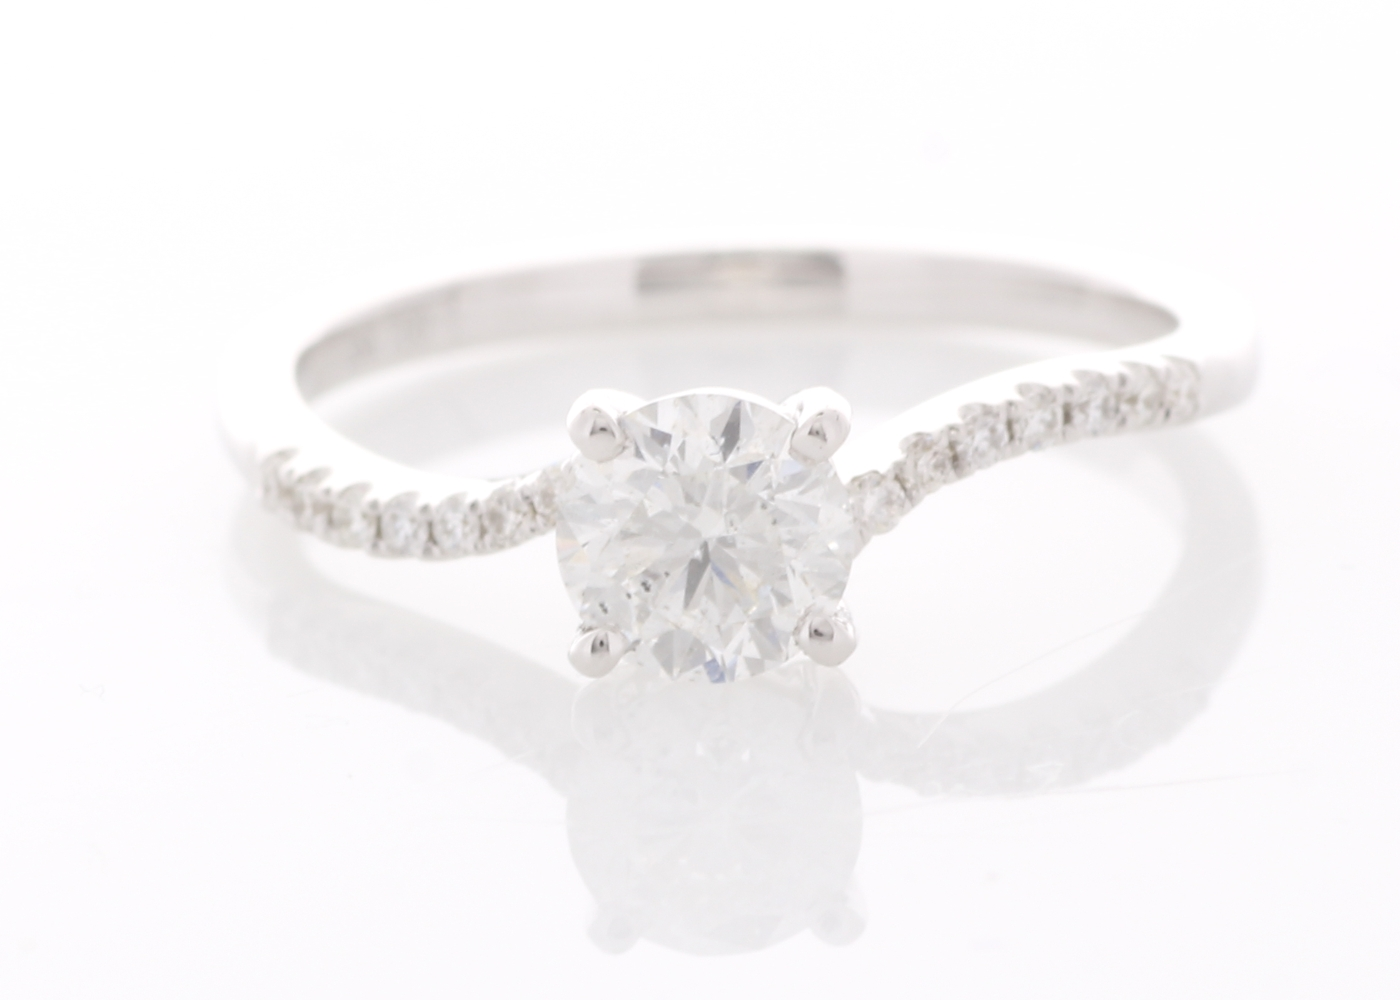 18ct White Gold Prong Set With Stone Set Shoulders Diamond Ring 0.73 Carats